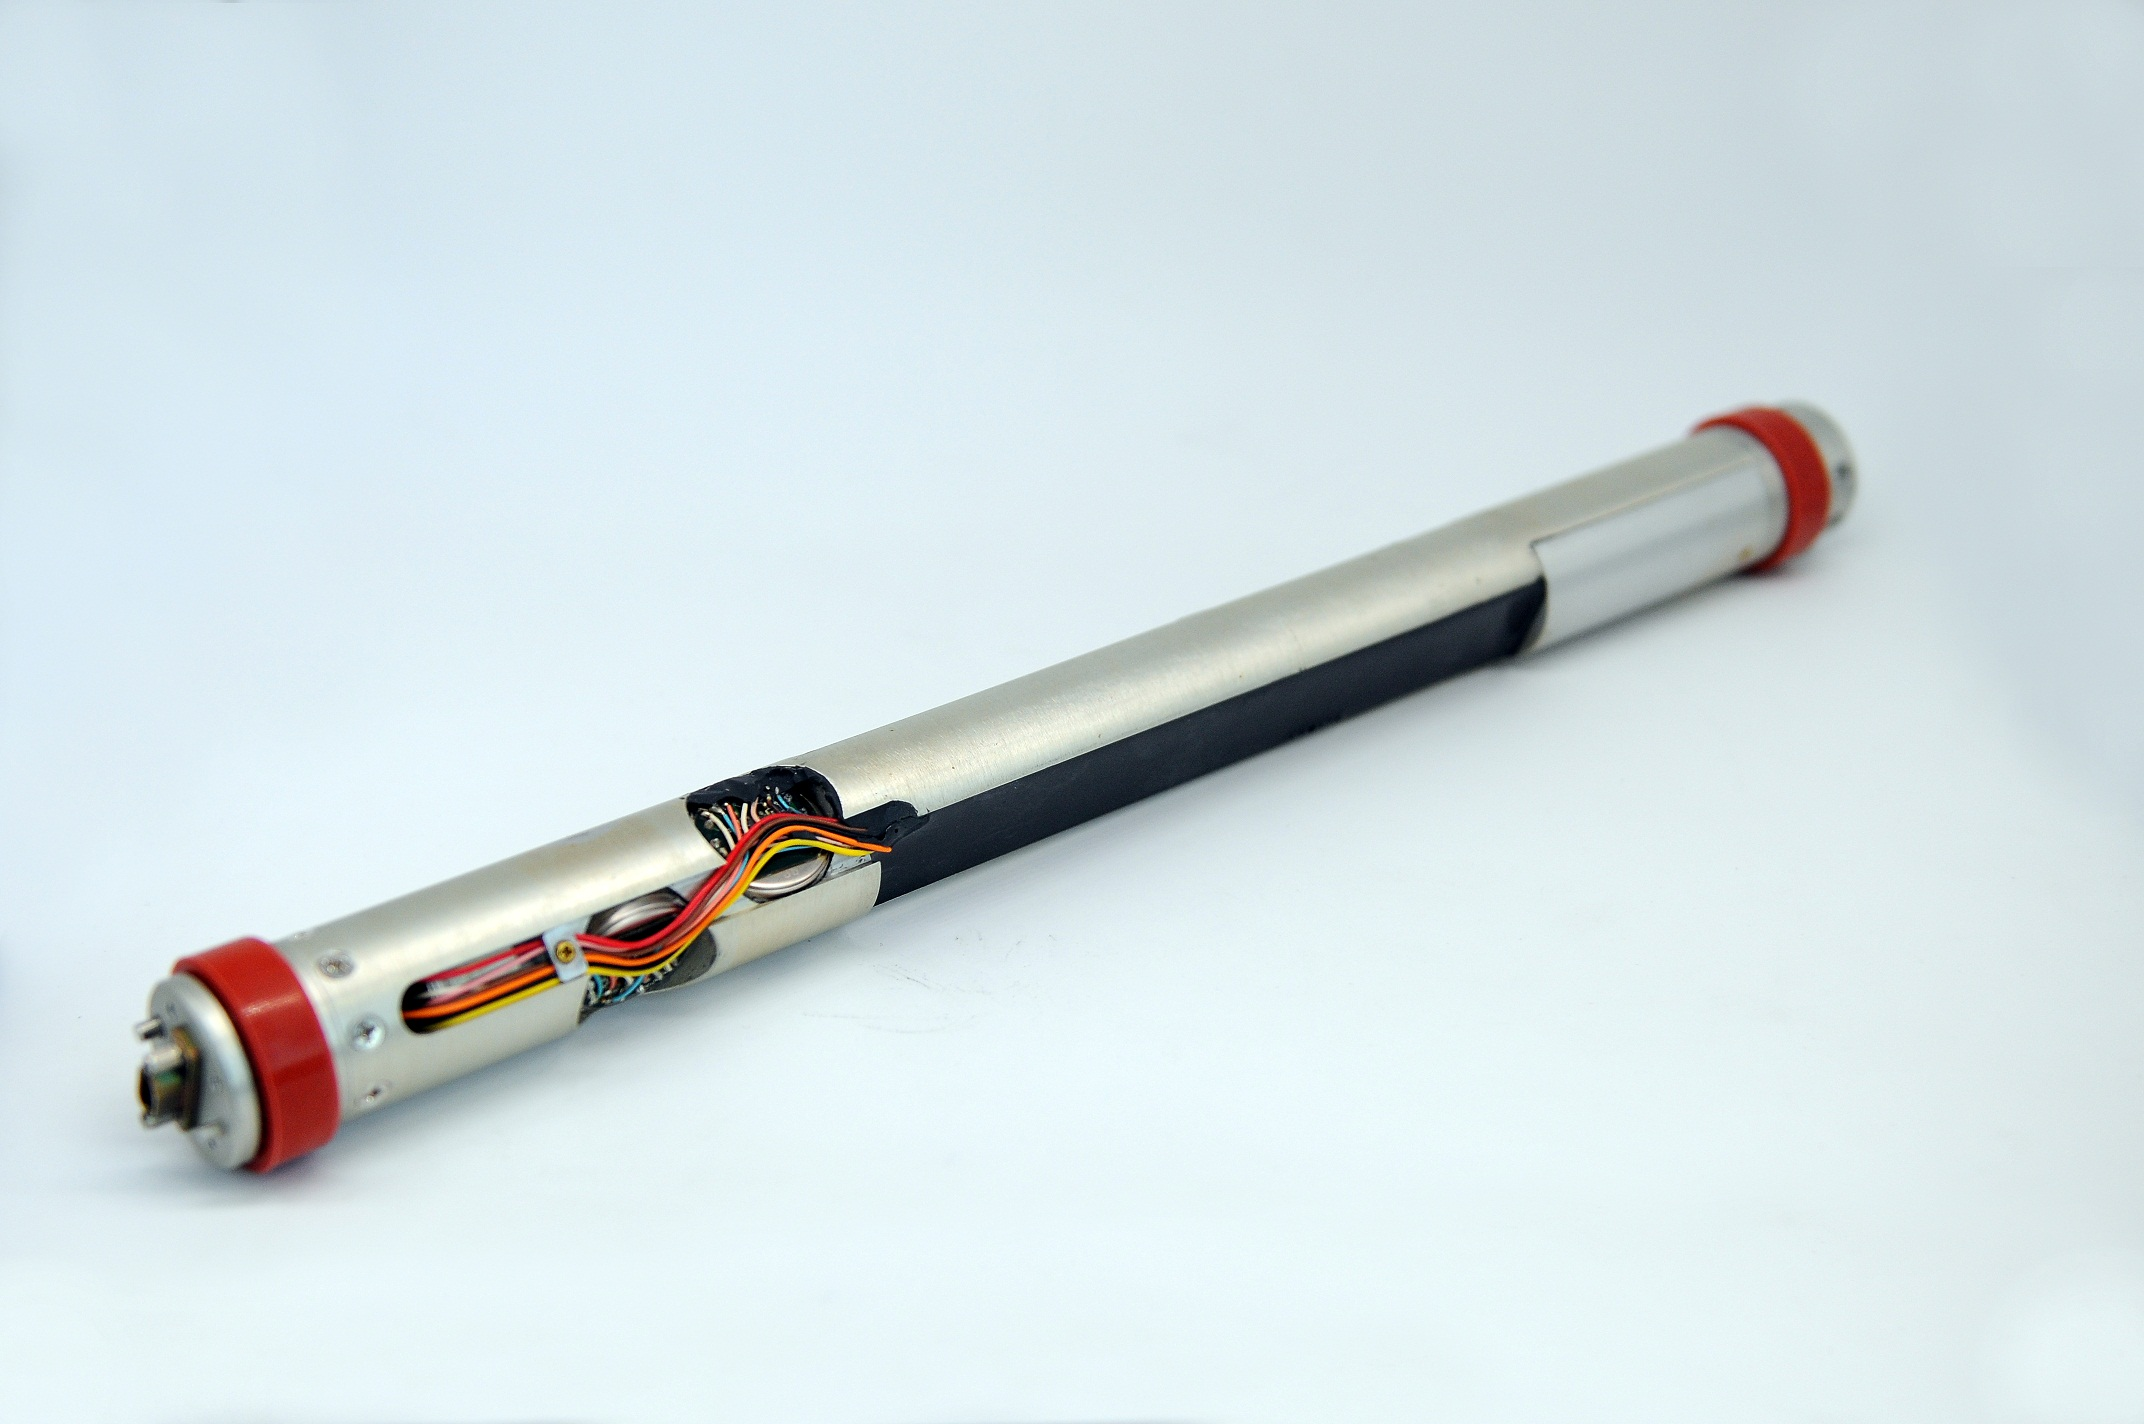 HNYN sells high temperature directional sensor for MWD/LWD/Directional drilling/ wireline logging